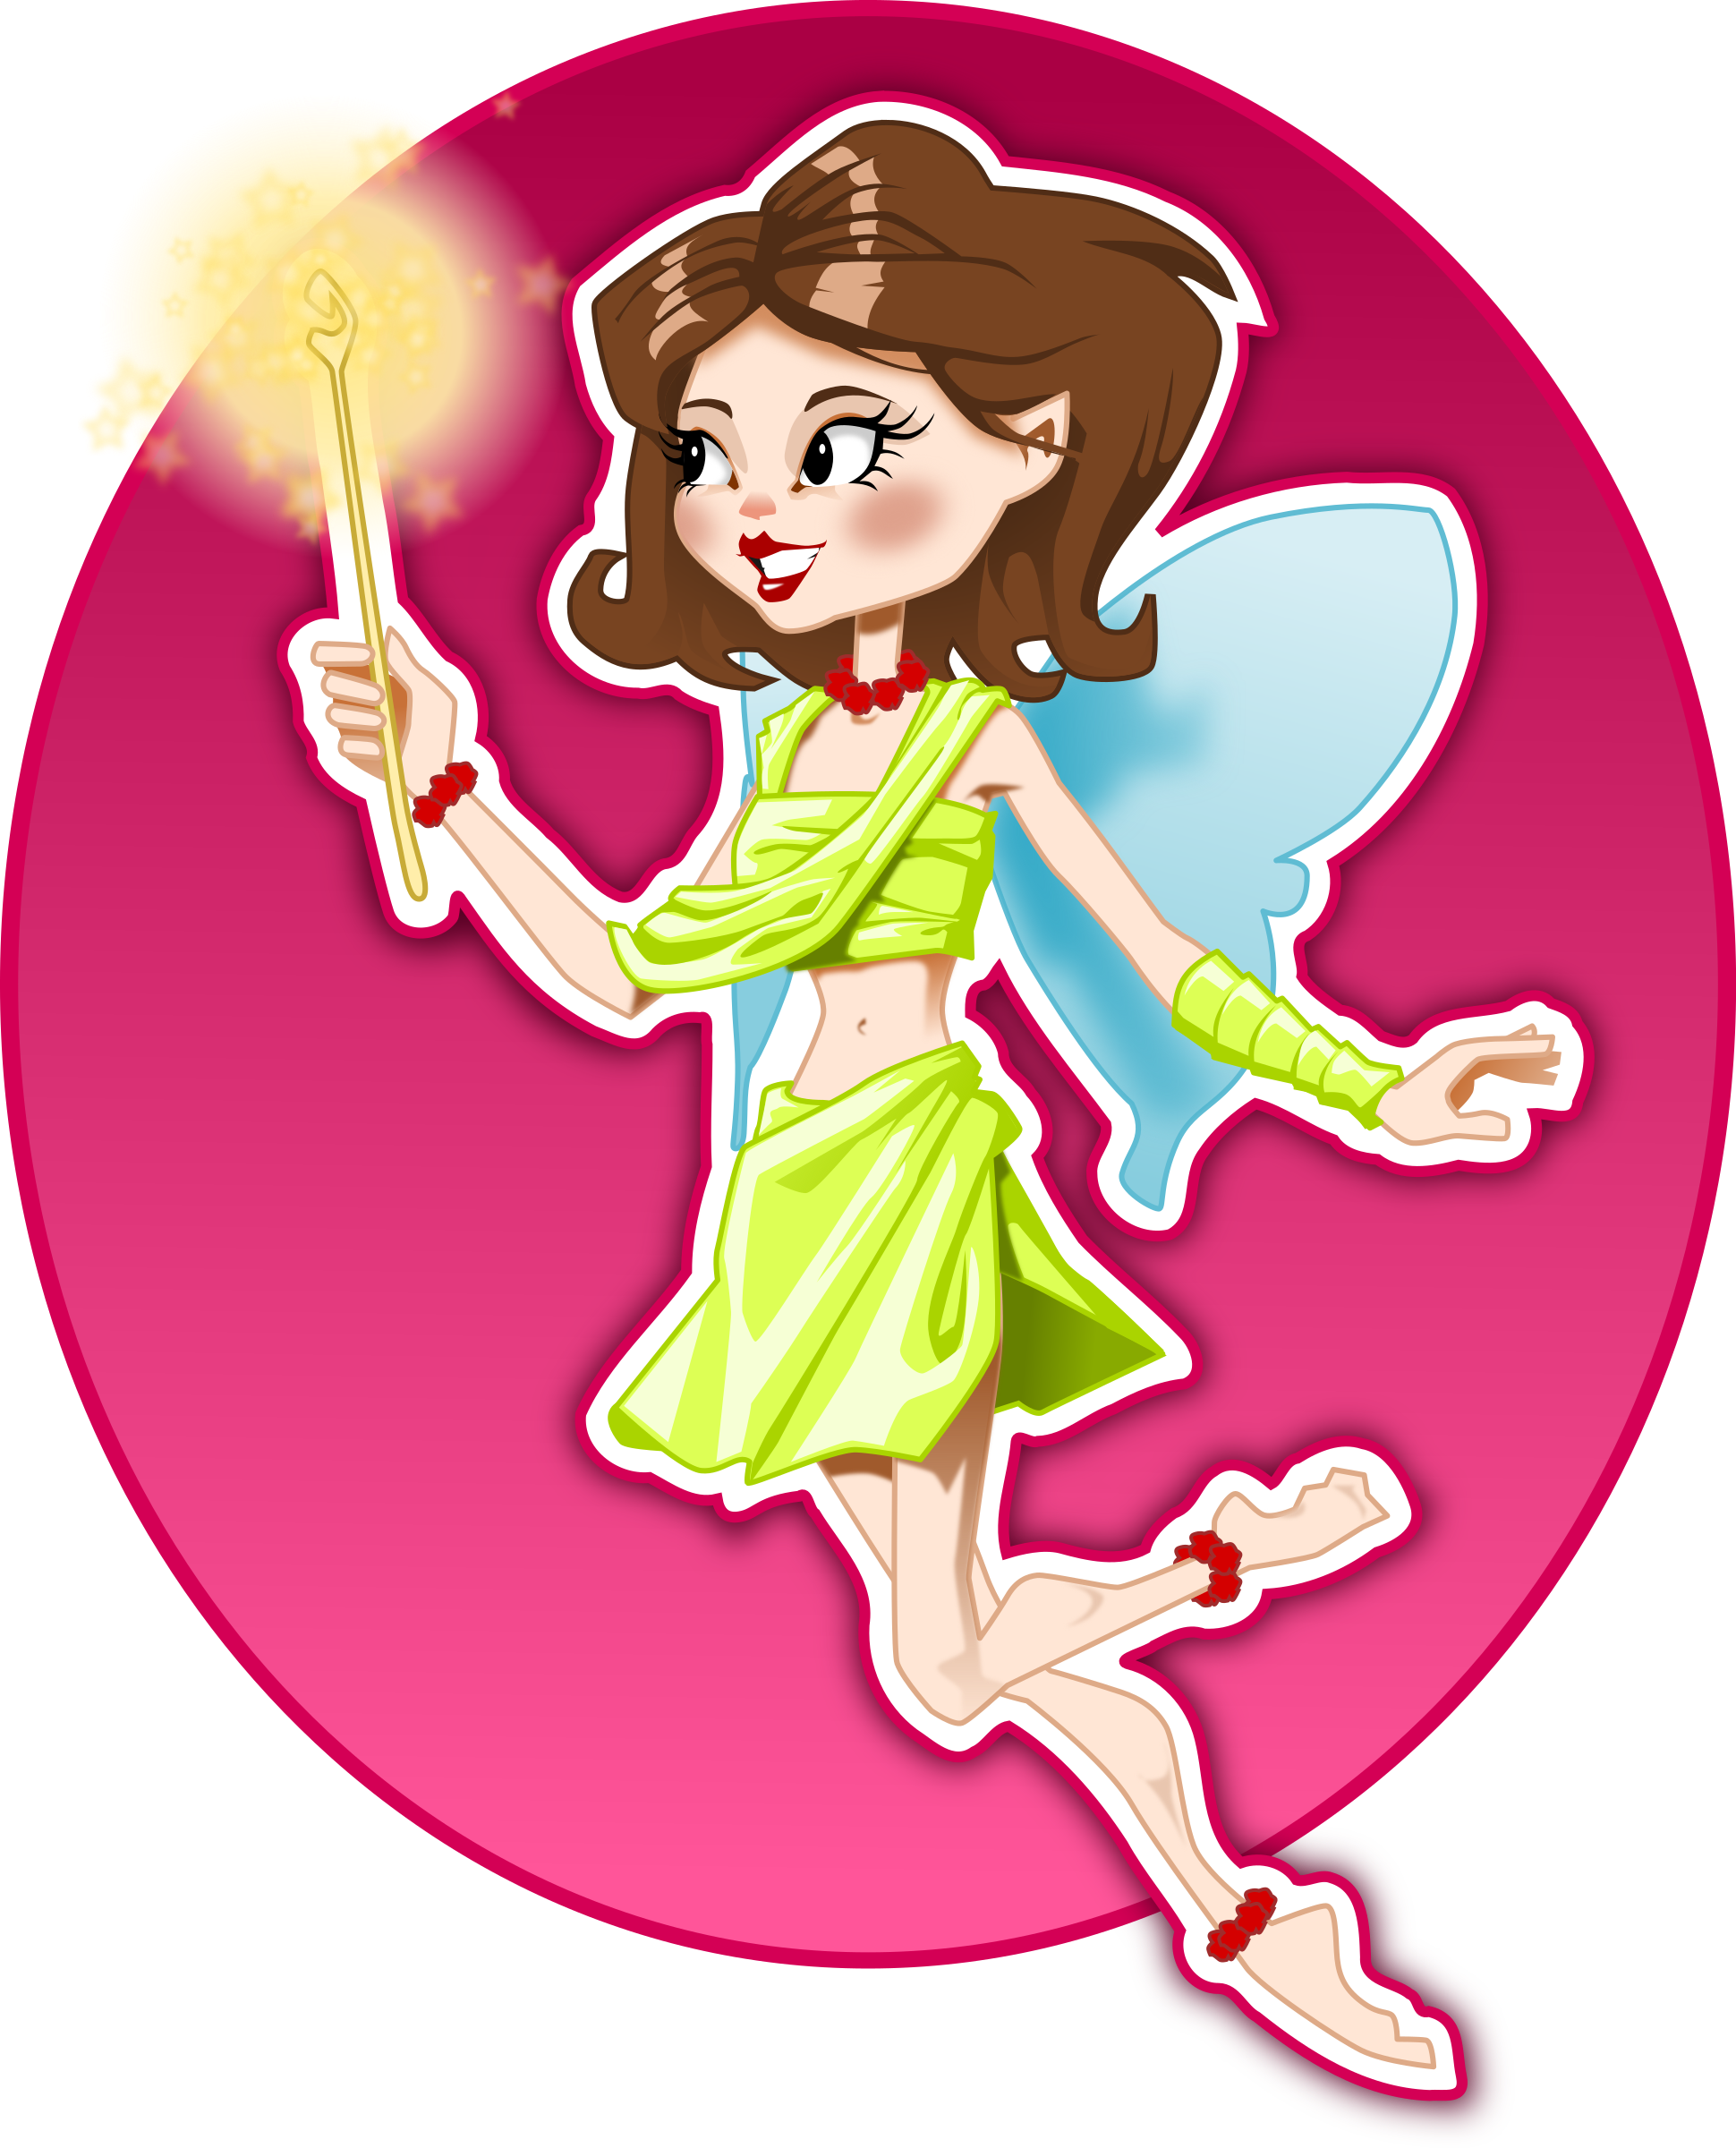 Fairy clipart nature. Big image png